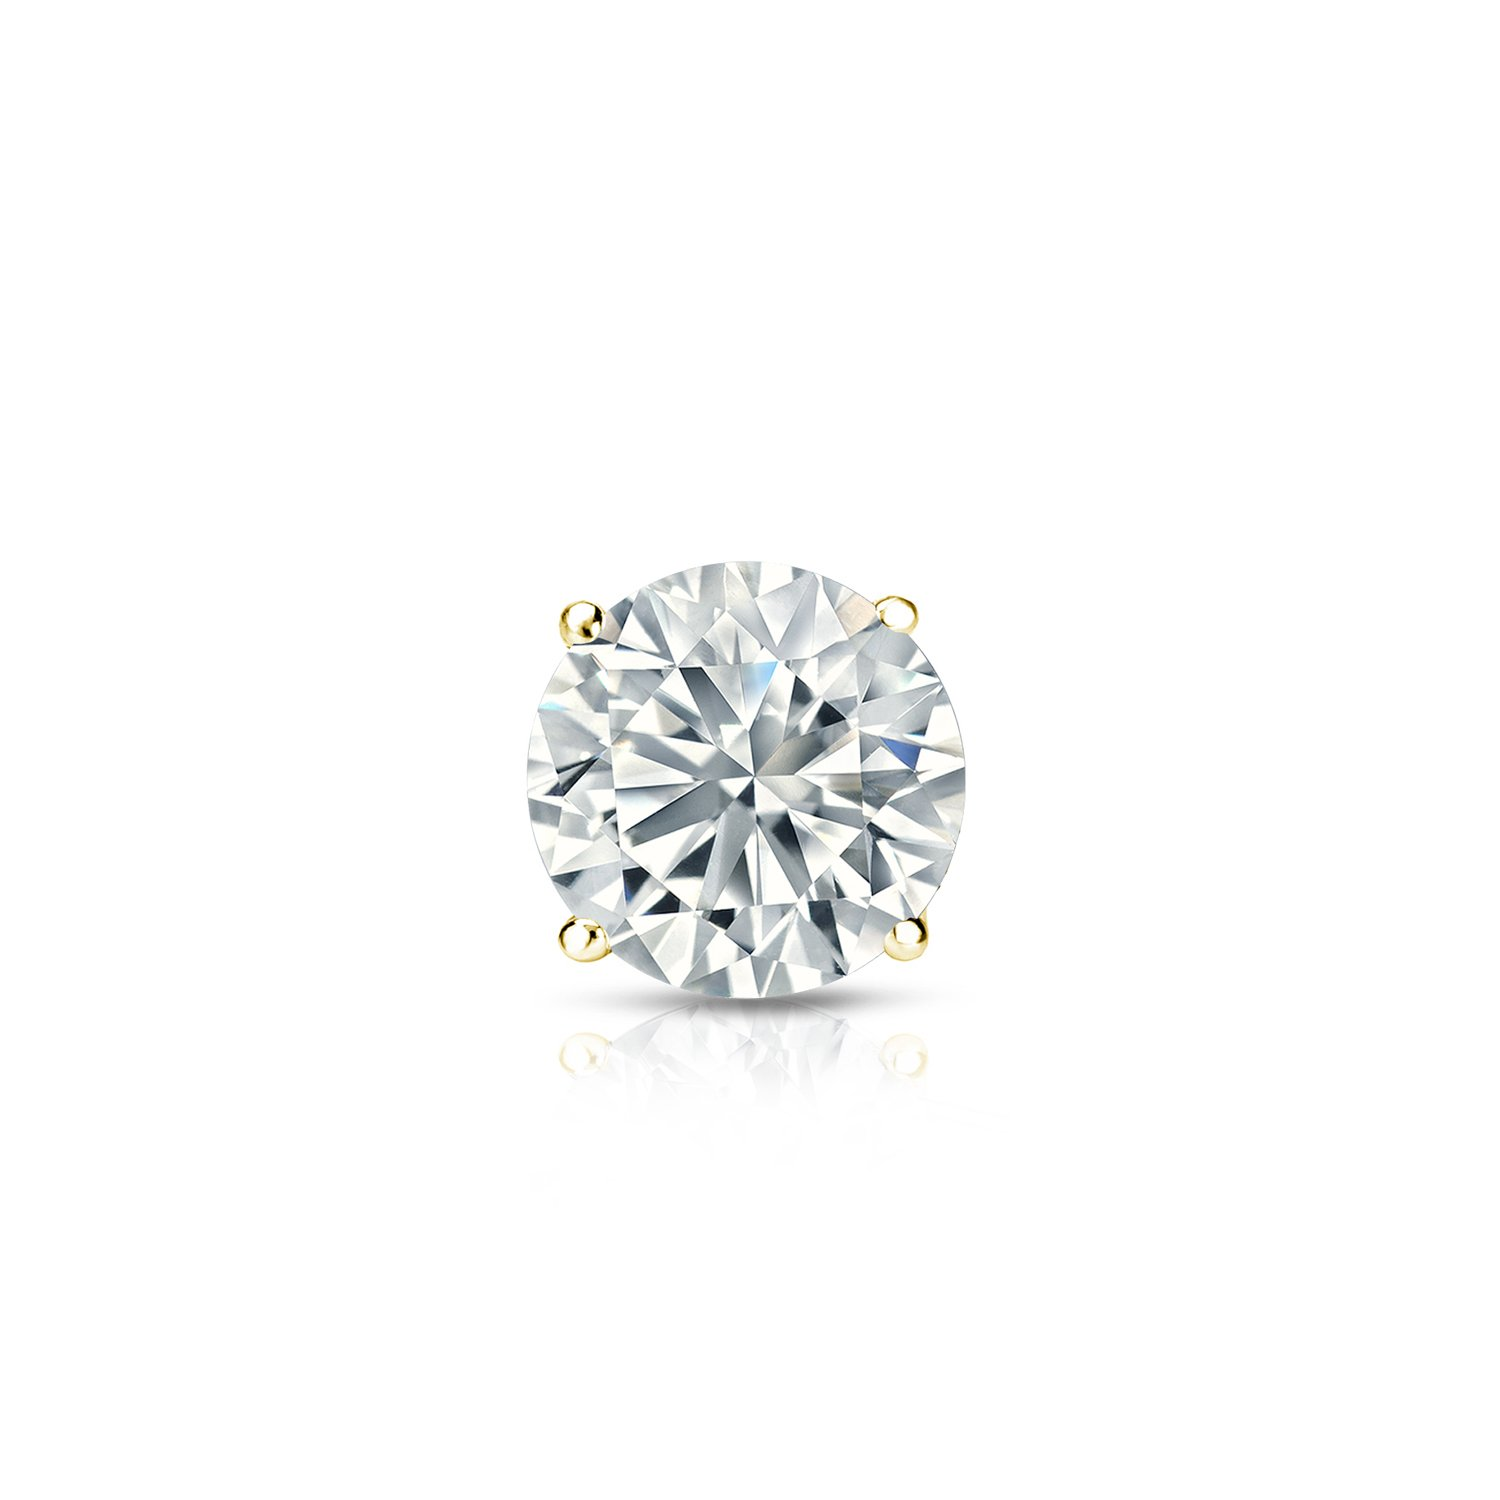 14k Yellow Gold Round Diamond Simulant CZ SINGLE STUD Earrings 3-Prong(3/8cttw,Excellent Quality)